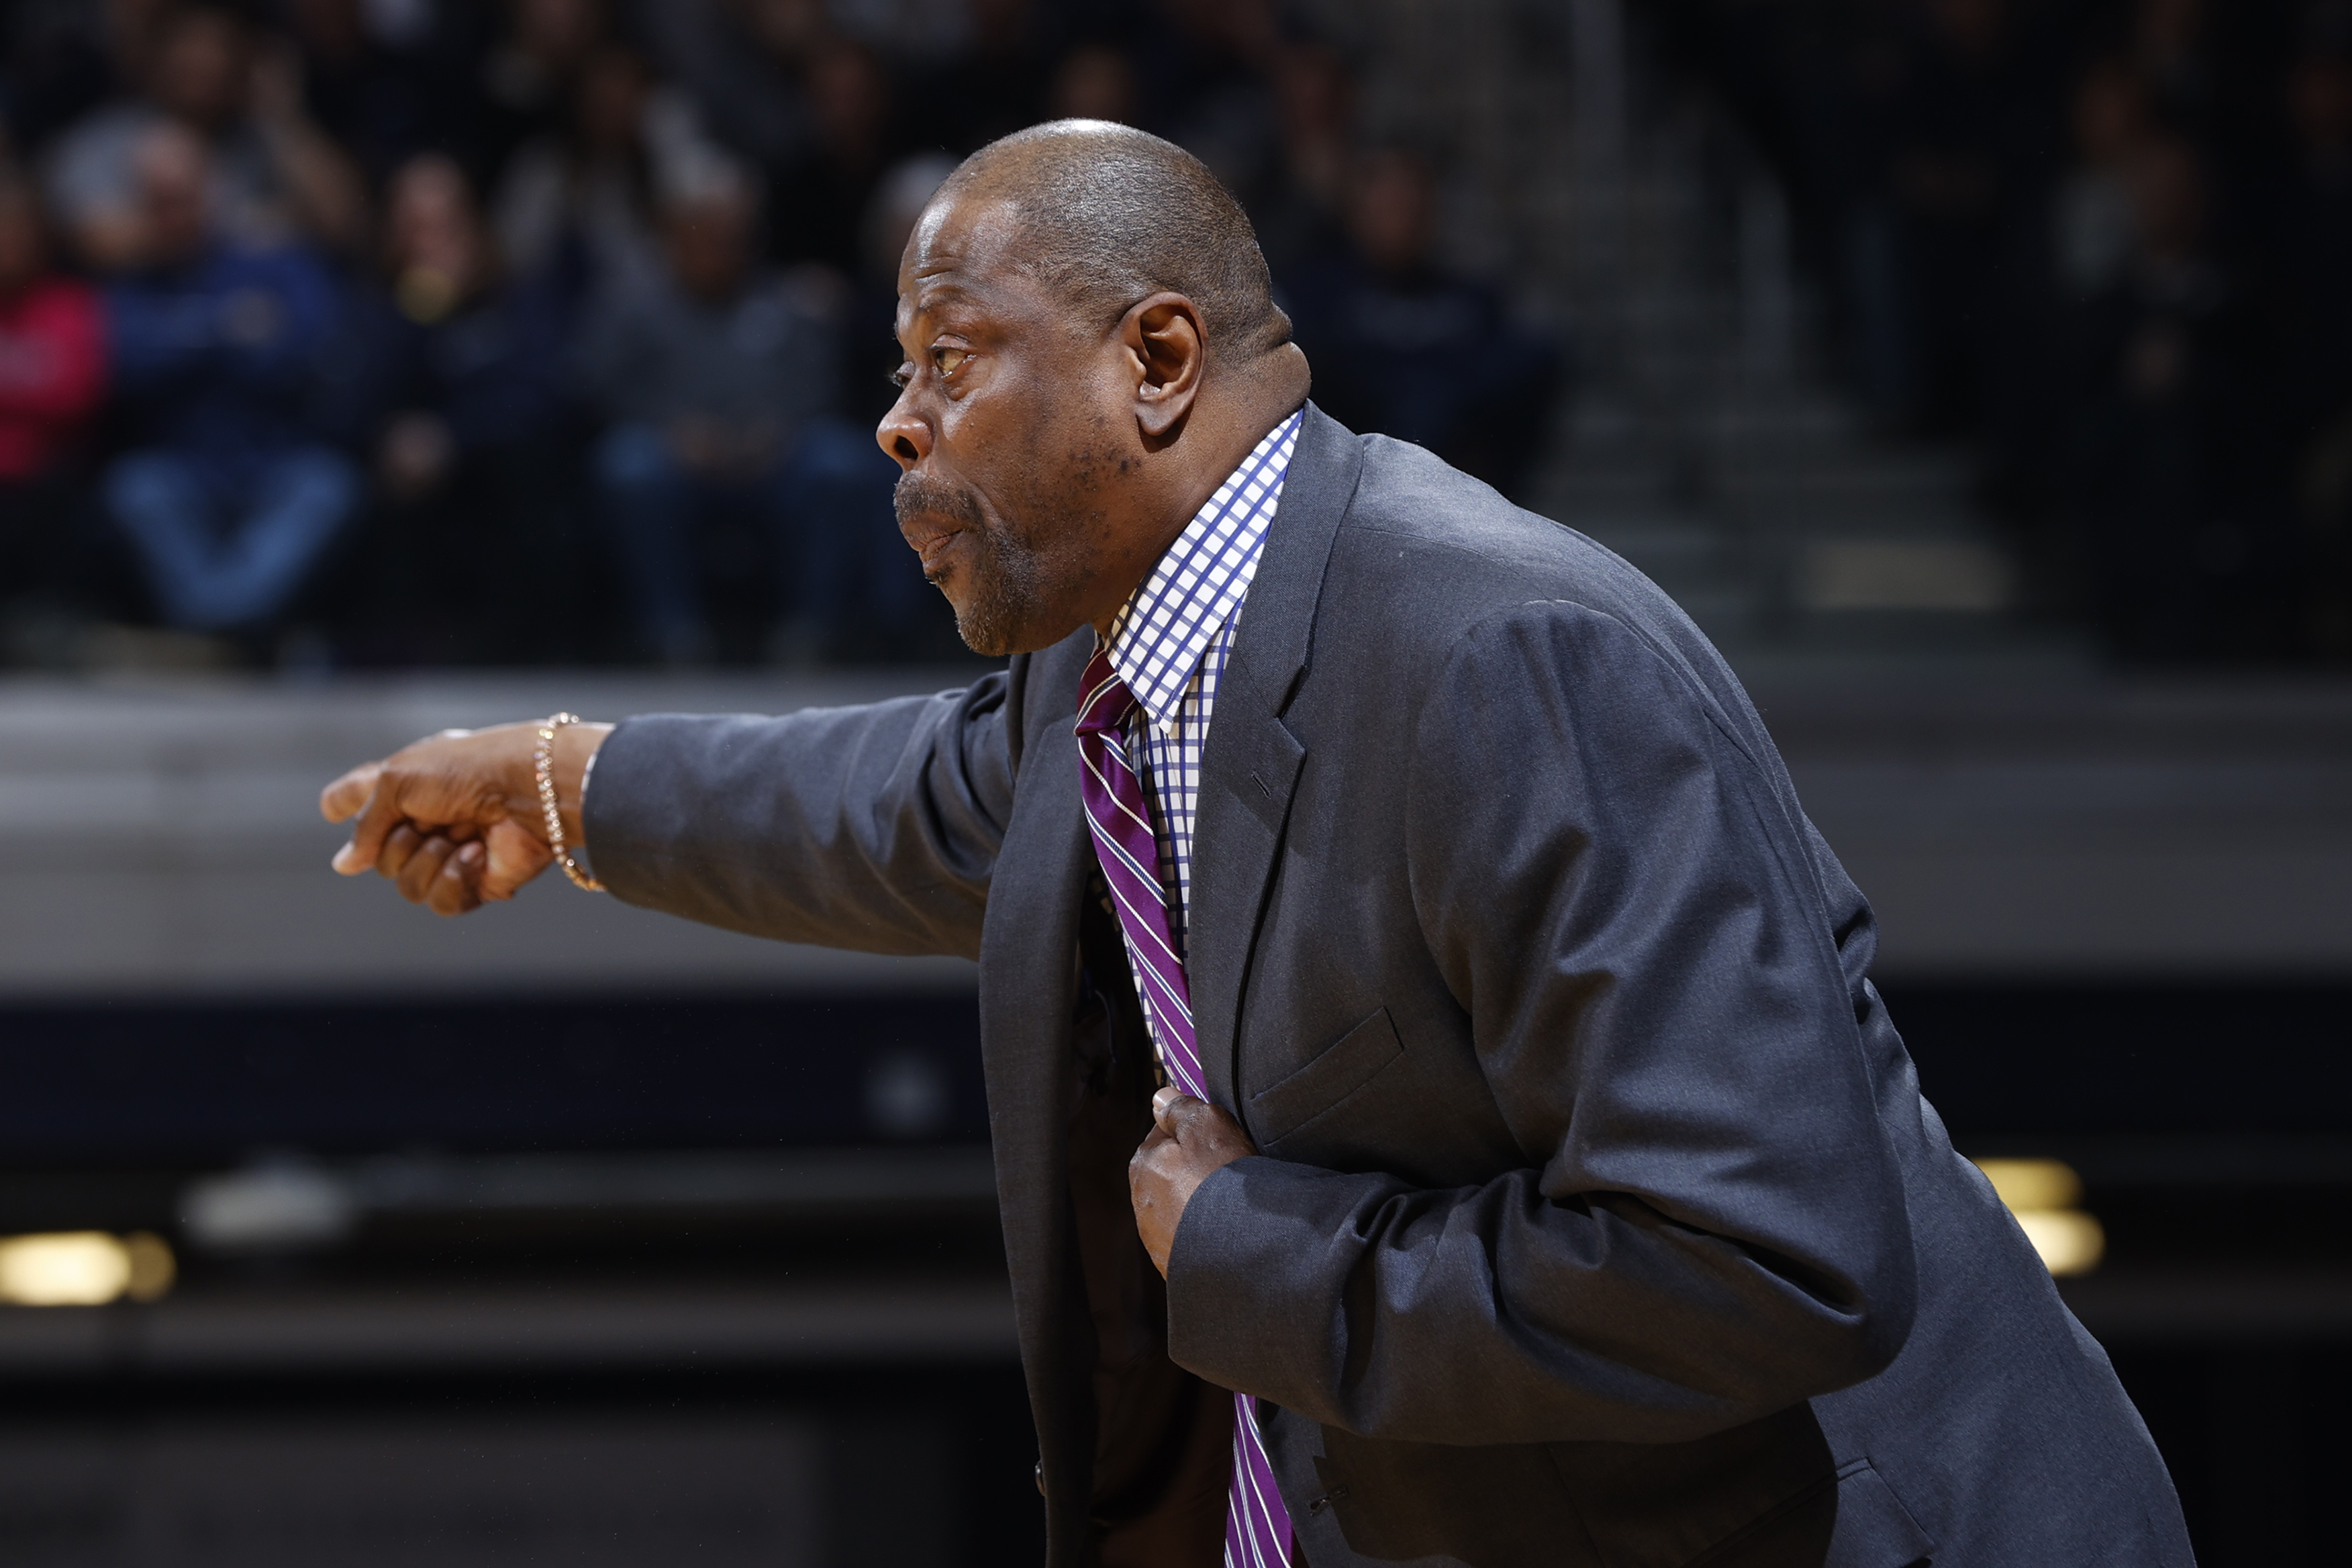 NBA legend Patrick Ewing is recovering at home after testing positive for the coronavirus